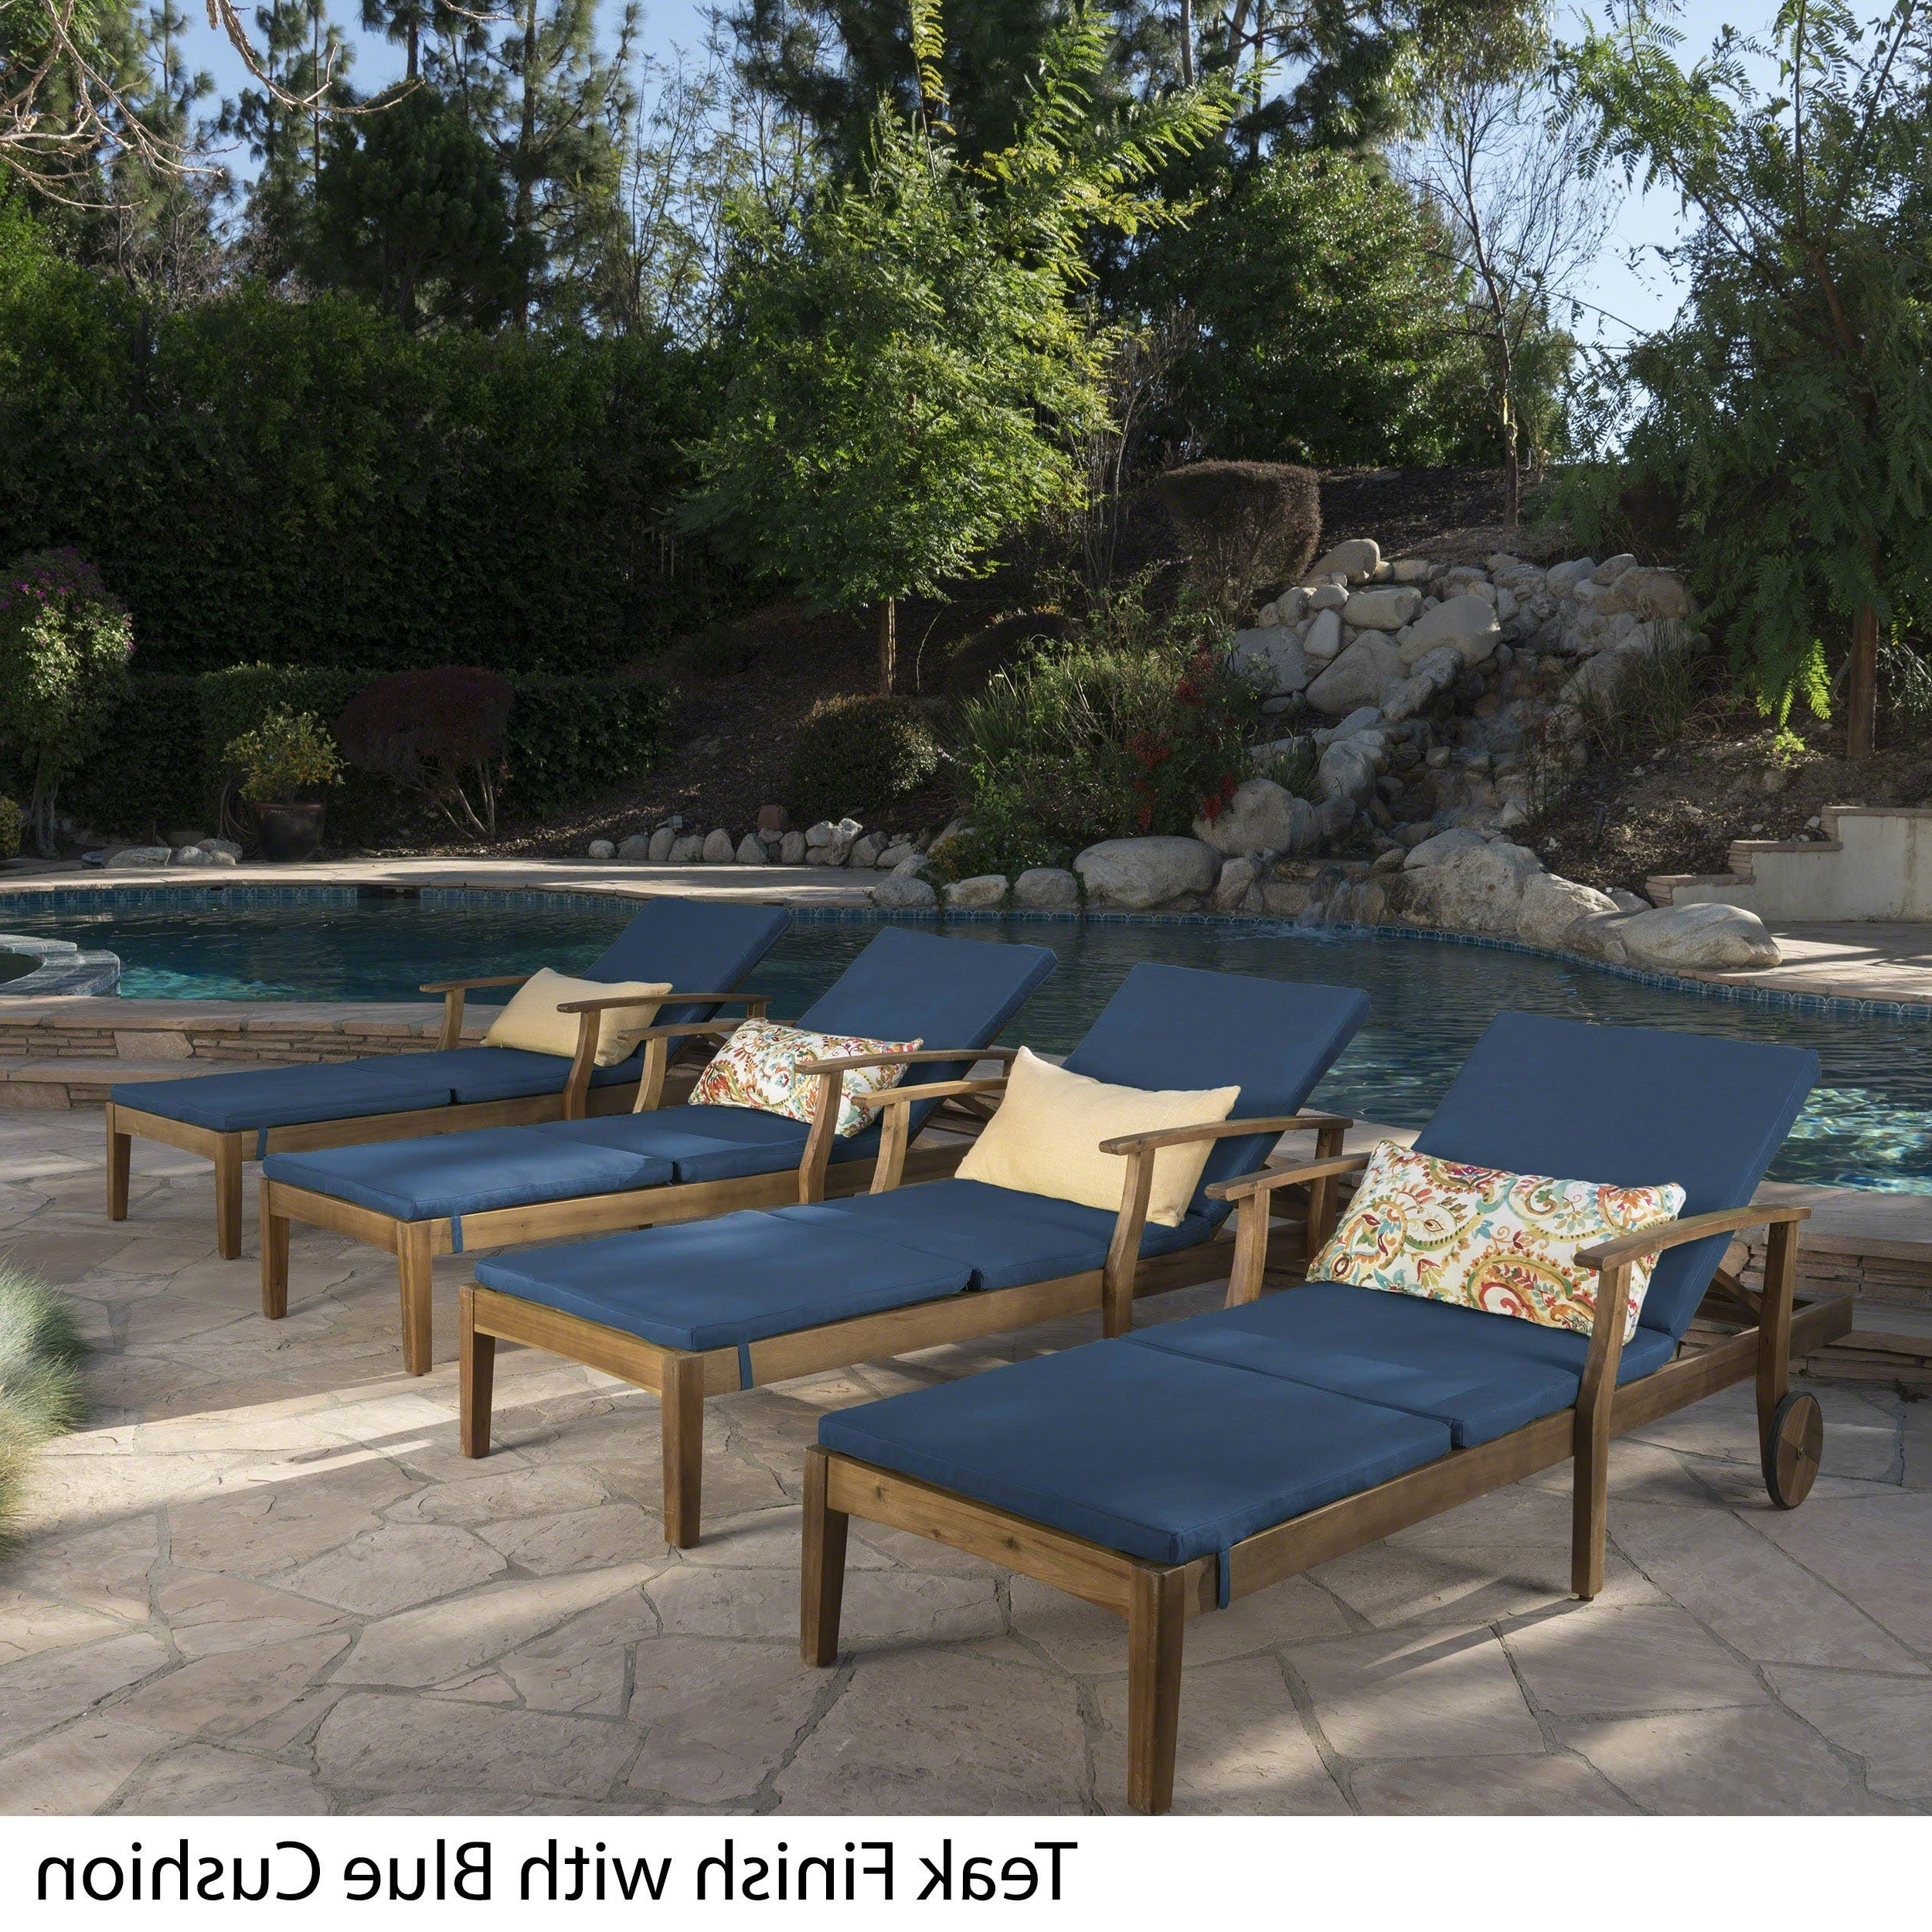 Well Known Perla Outdoor Acacia Wood Chaise Lounge With Cushion Throughout Perla Outdoor Acacia Wood Chaise Lounge With Cushion (Set Of 4) Christopher Knight Home (View 24 of 25)